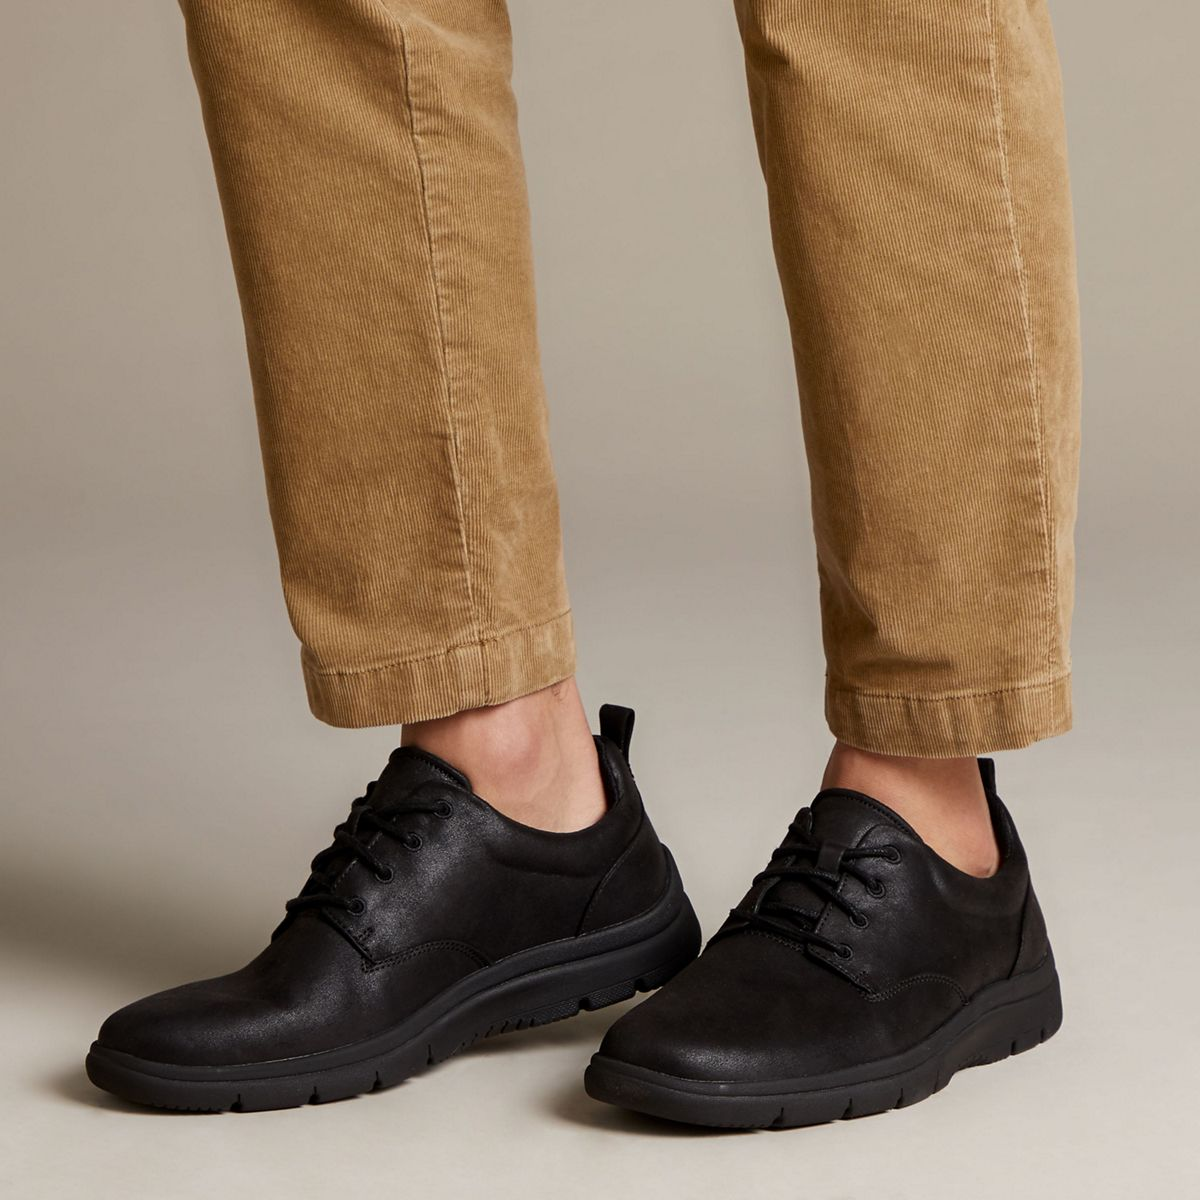 Dempsey prototipo Crónica  Tunsil Lane Black - Clarks Canada Official Site | Clarks Shoes